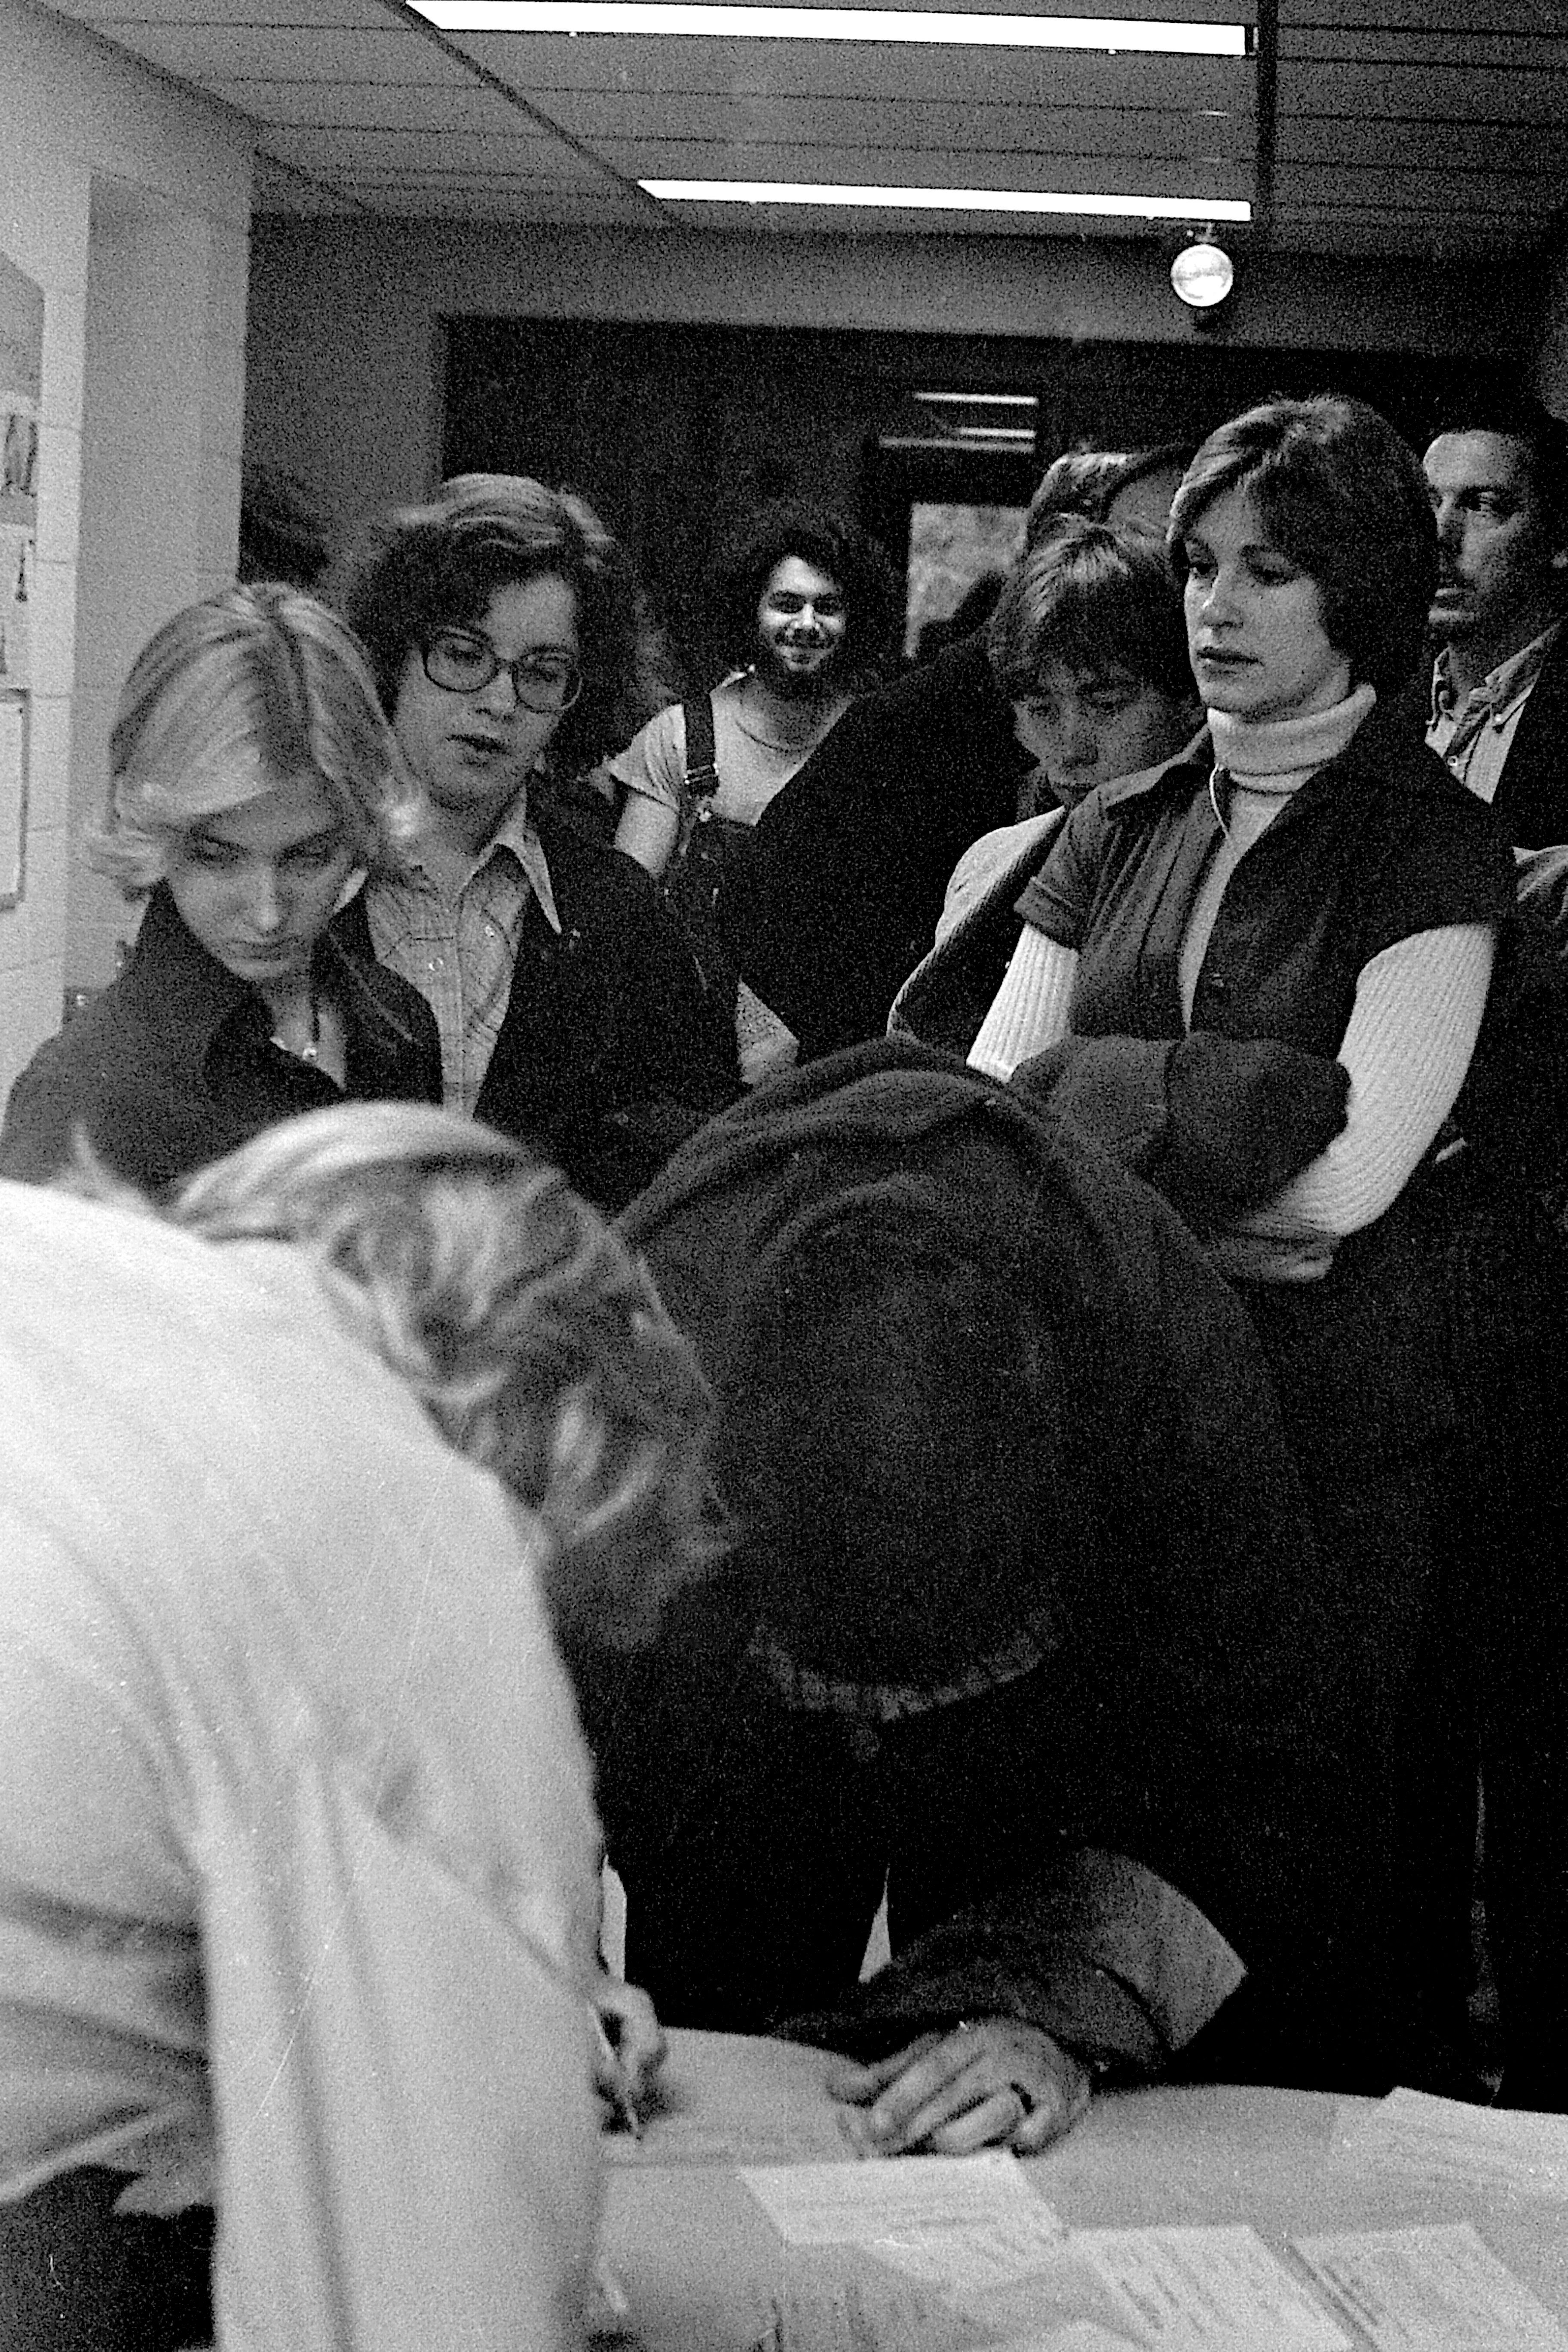 Waiting in Line to Vote in the Presidential Election, November 1976 image